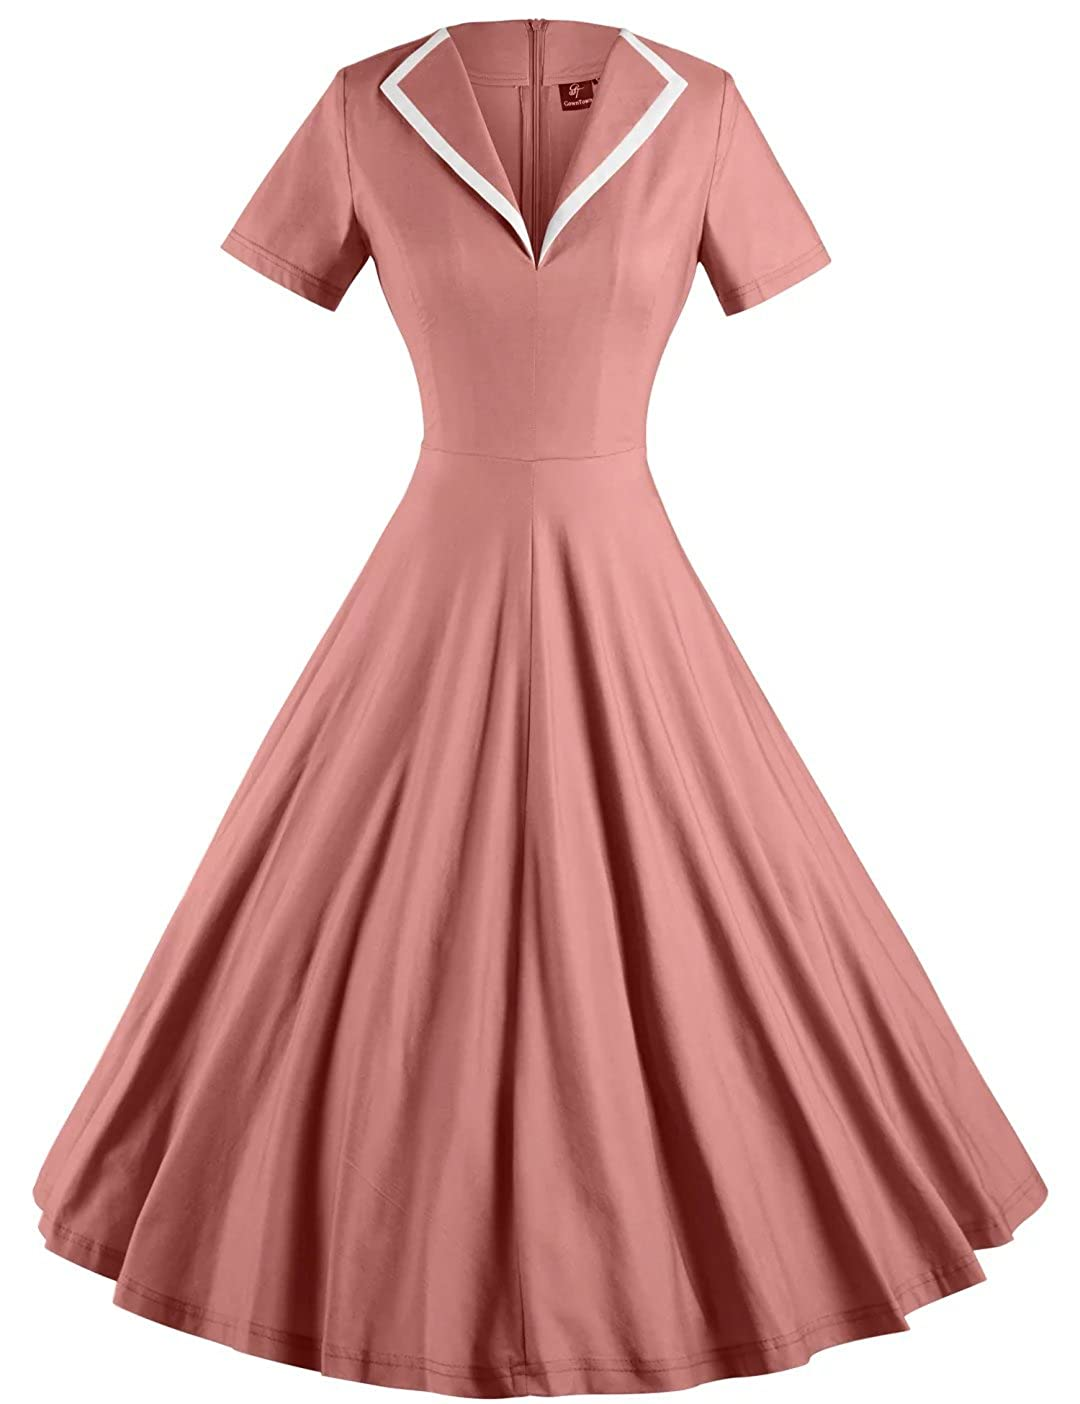 Rockabilly Dresses | Rockabilly Clothing | Viva Las Vegas GownTown Womens 1950s Retro Vintage V-Neck Party Swing Dress $35.98 AT vintagedancer.com